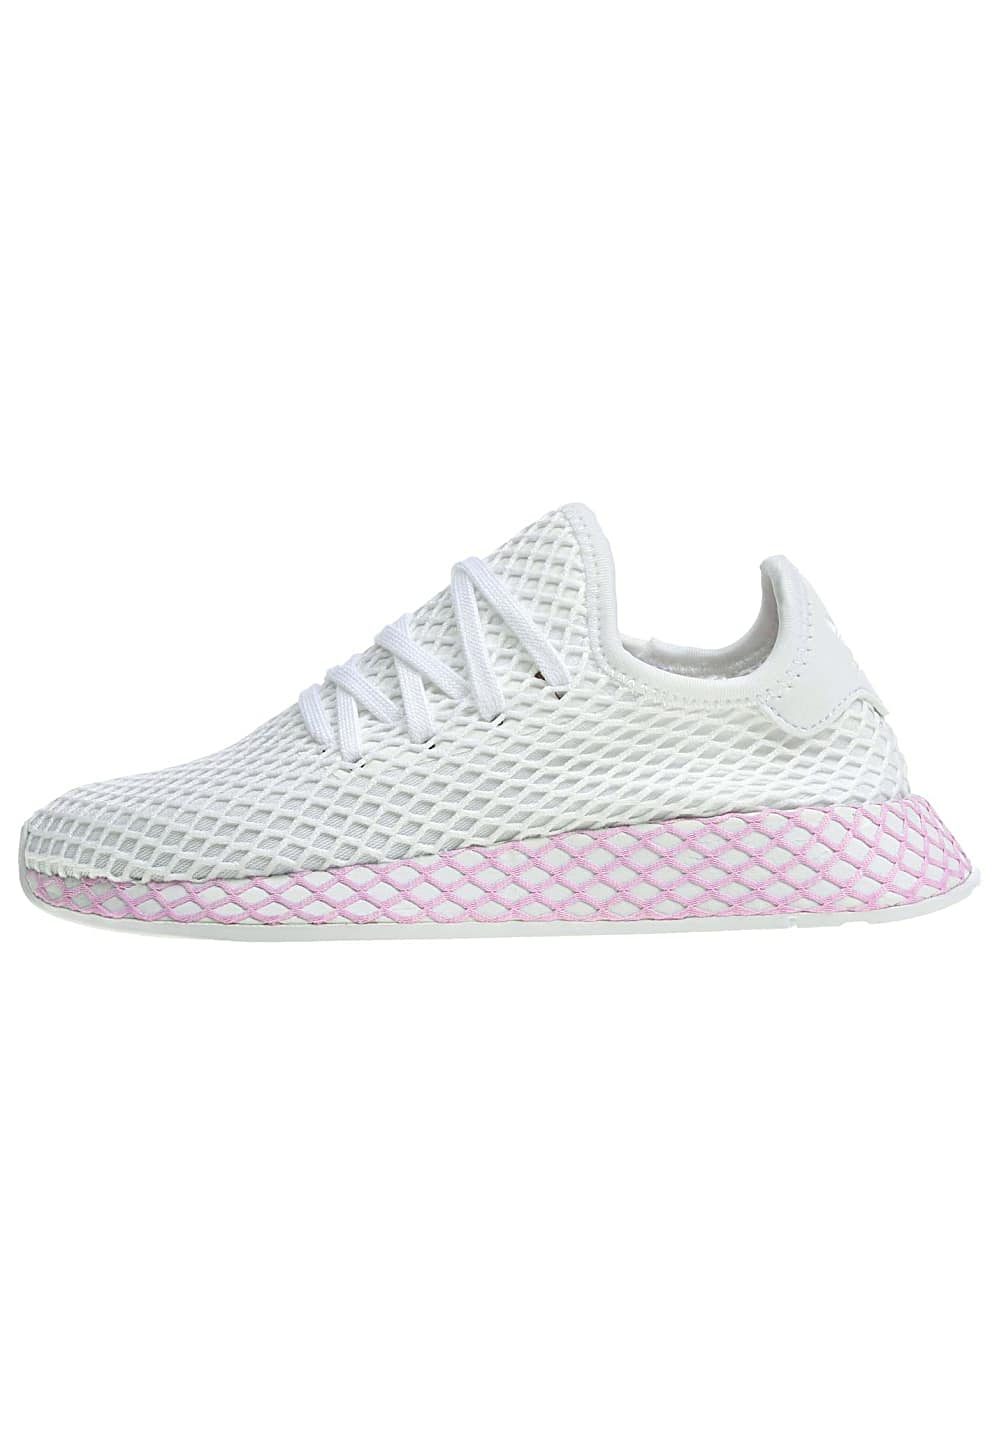 94bc0140778d3 ADIDAS ORIGINALS Deerupt - Sneakers for Women - White - Planet Sports